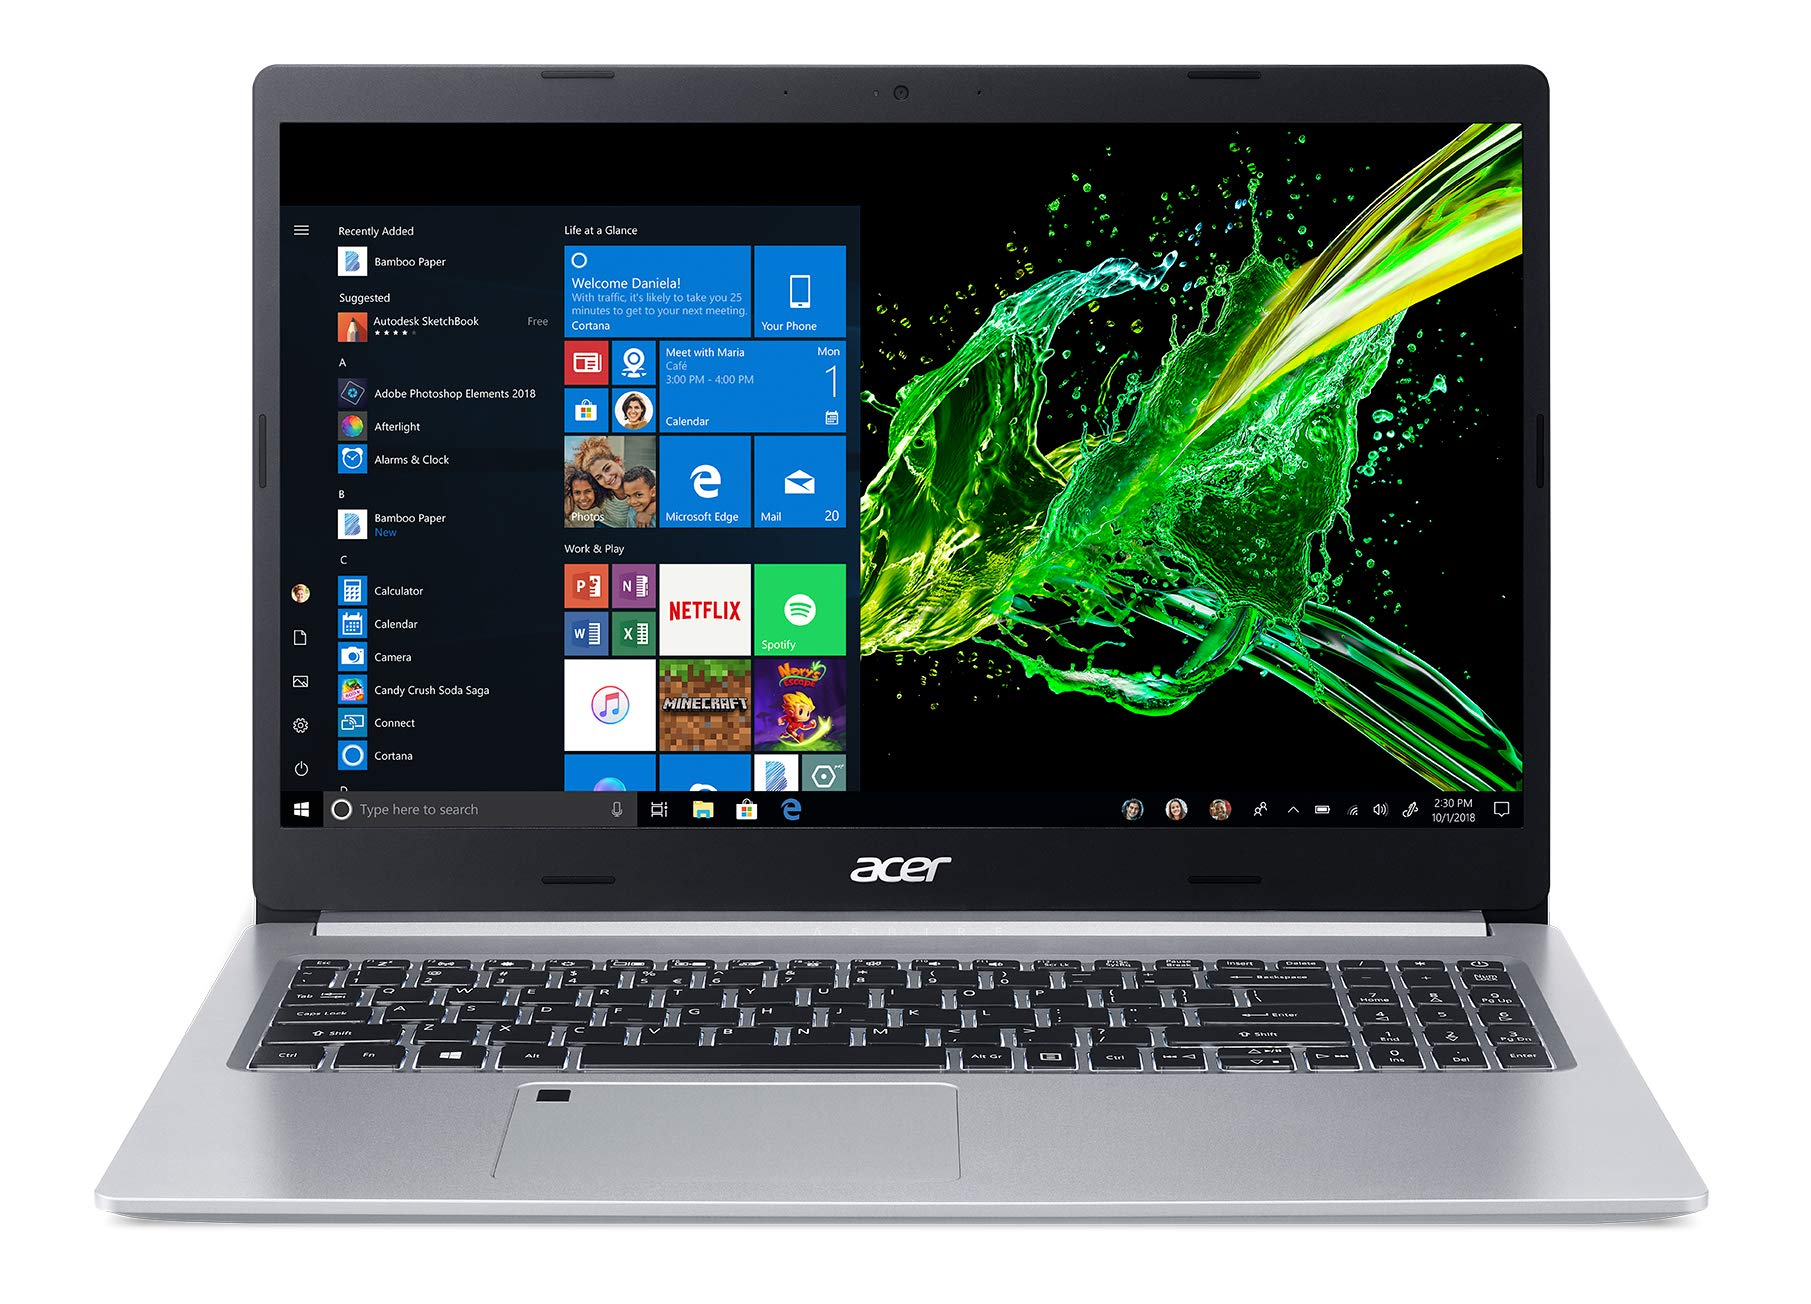 Acer Aspire 5, 15.6'' Full HD IPS Display, 8th Gen Intel Core i5-8265U, 8GB DDR4, 256GB PCIe NVMe SSD, Backlit Keyboard, Fingerprint Reader, Windows 10 Home, A515-54-51DJ by Acer (Image #5)